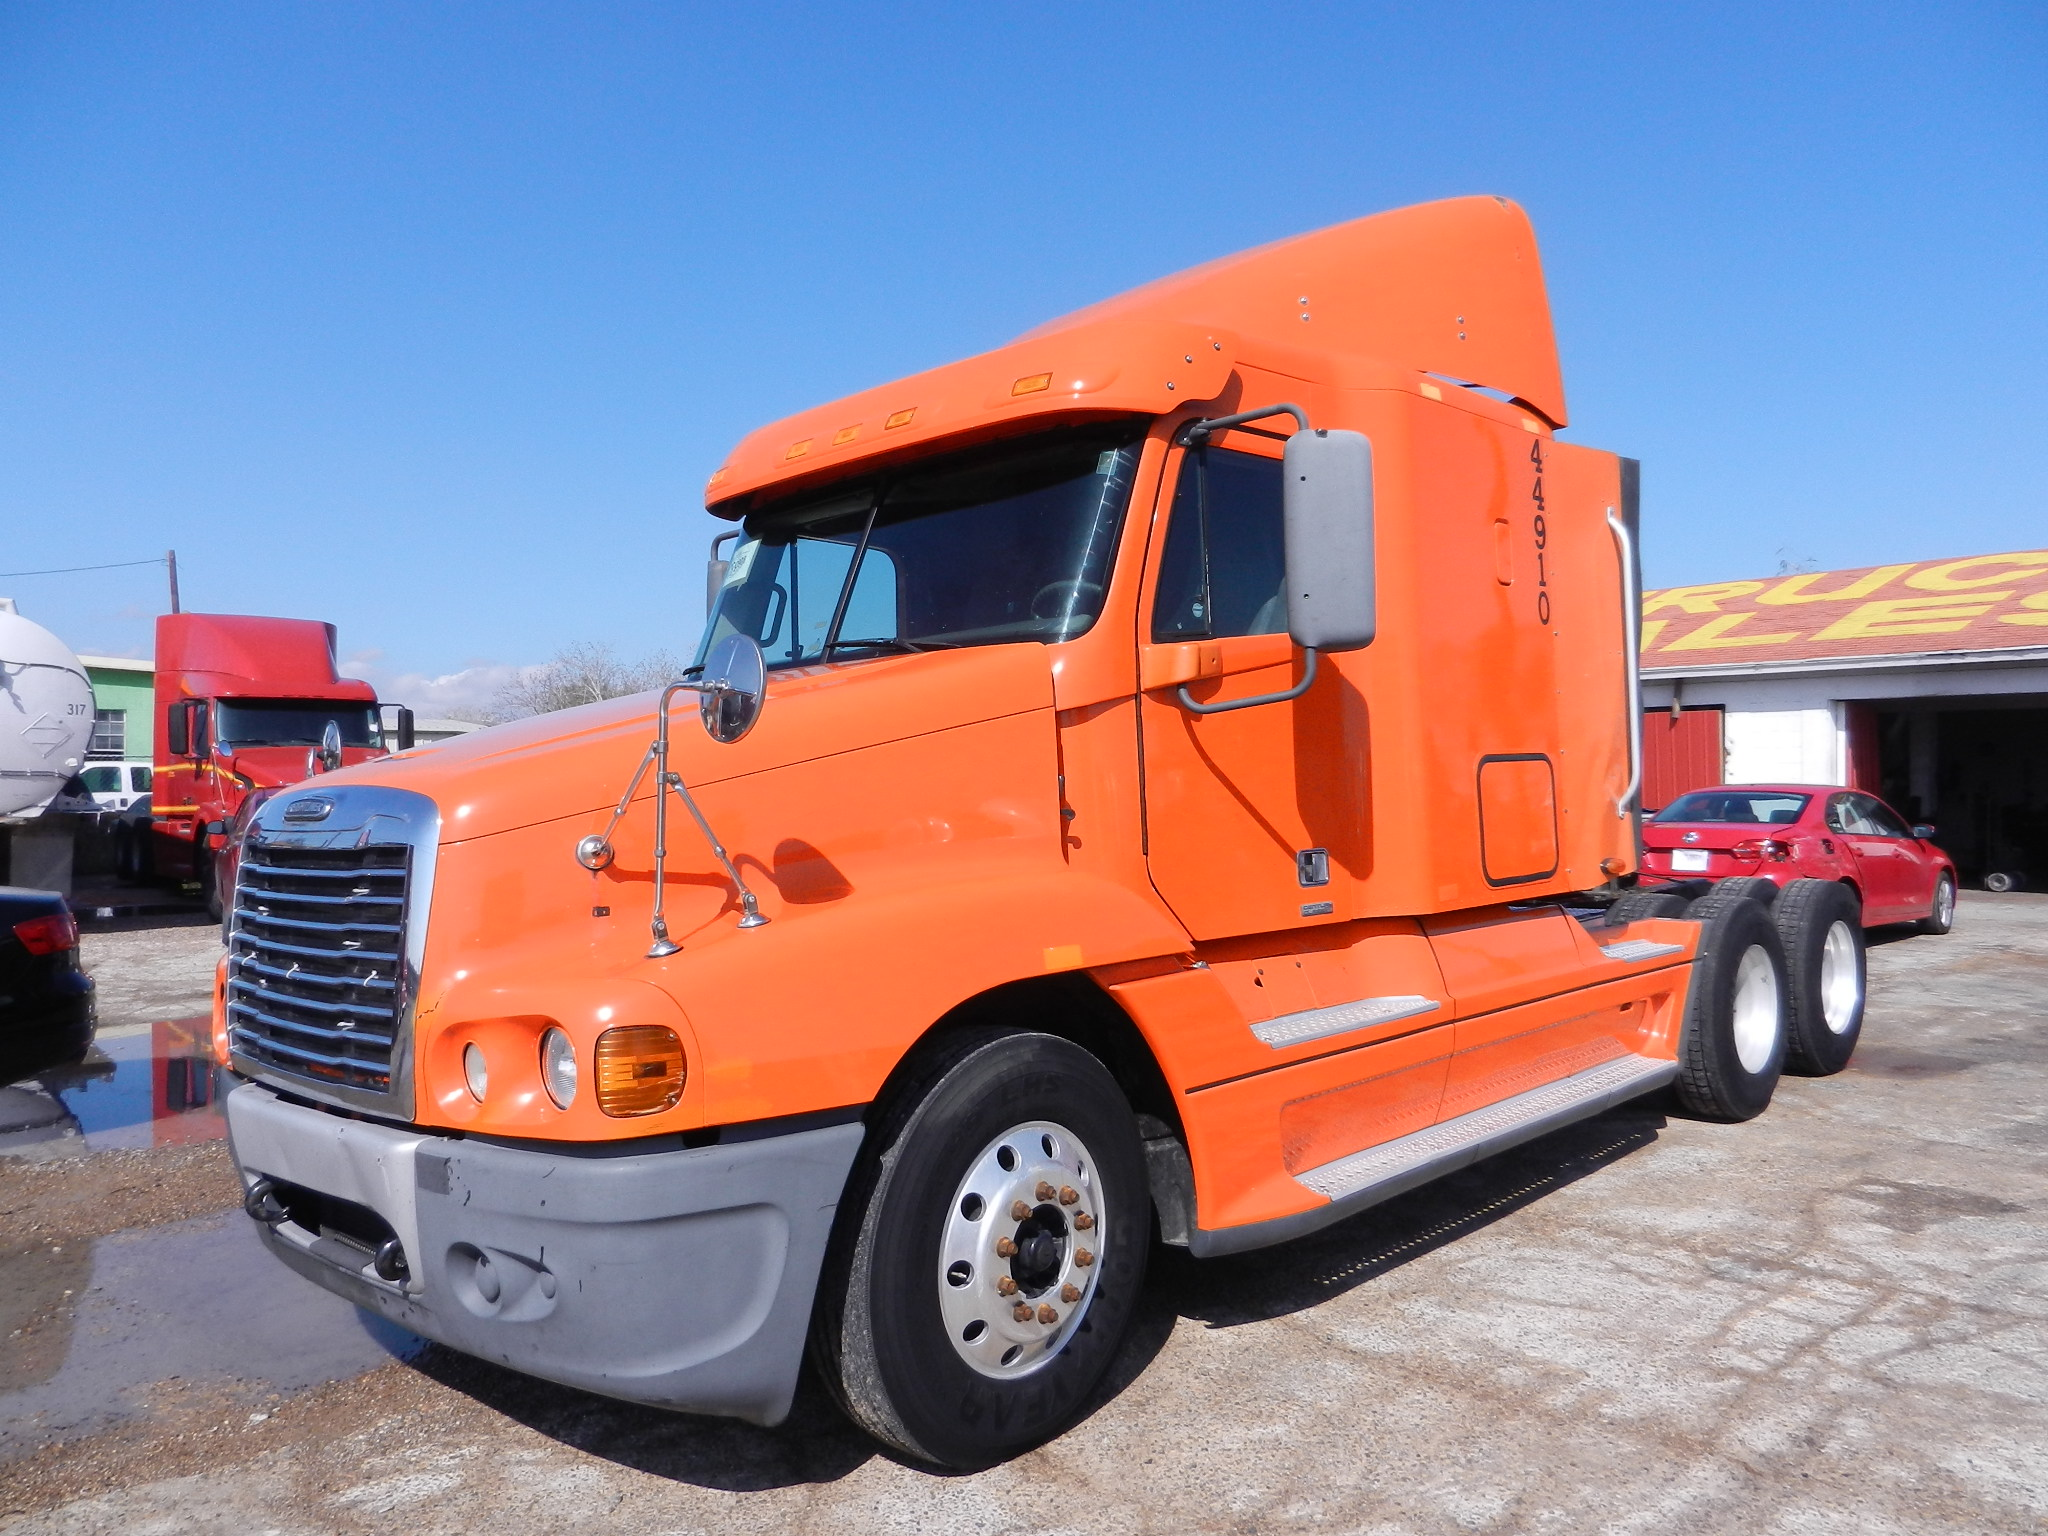 2006 Freightliner Century Class  Detroit 12.7L 475HP, Jakes, 10 speed Transmission, Air ride suspension,mid roof Sleeper, Alluminum front wheels, 22.5 tires, air condition, 530k  original miles      SOLD